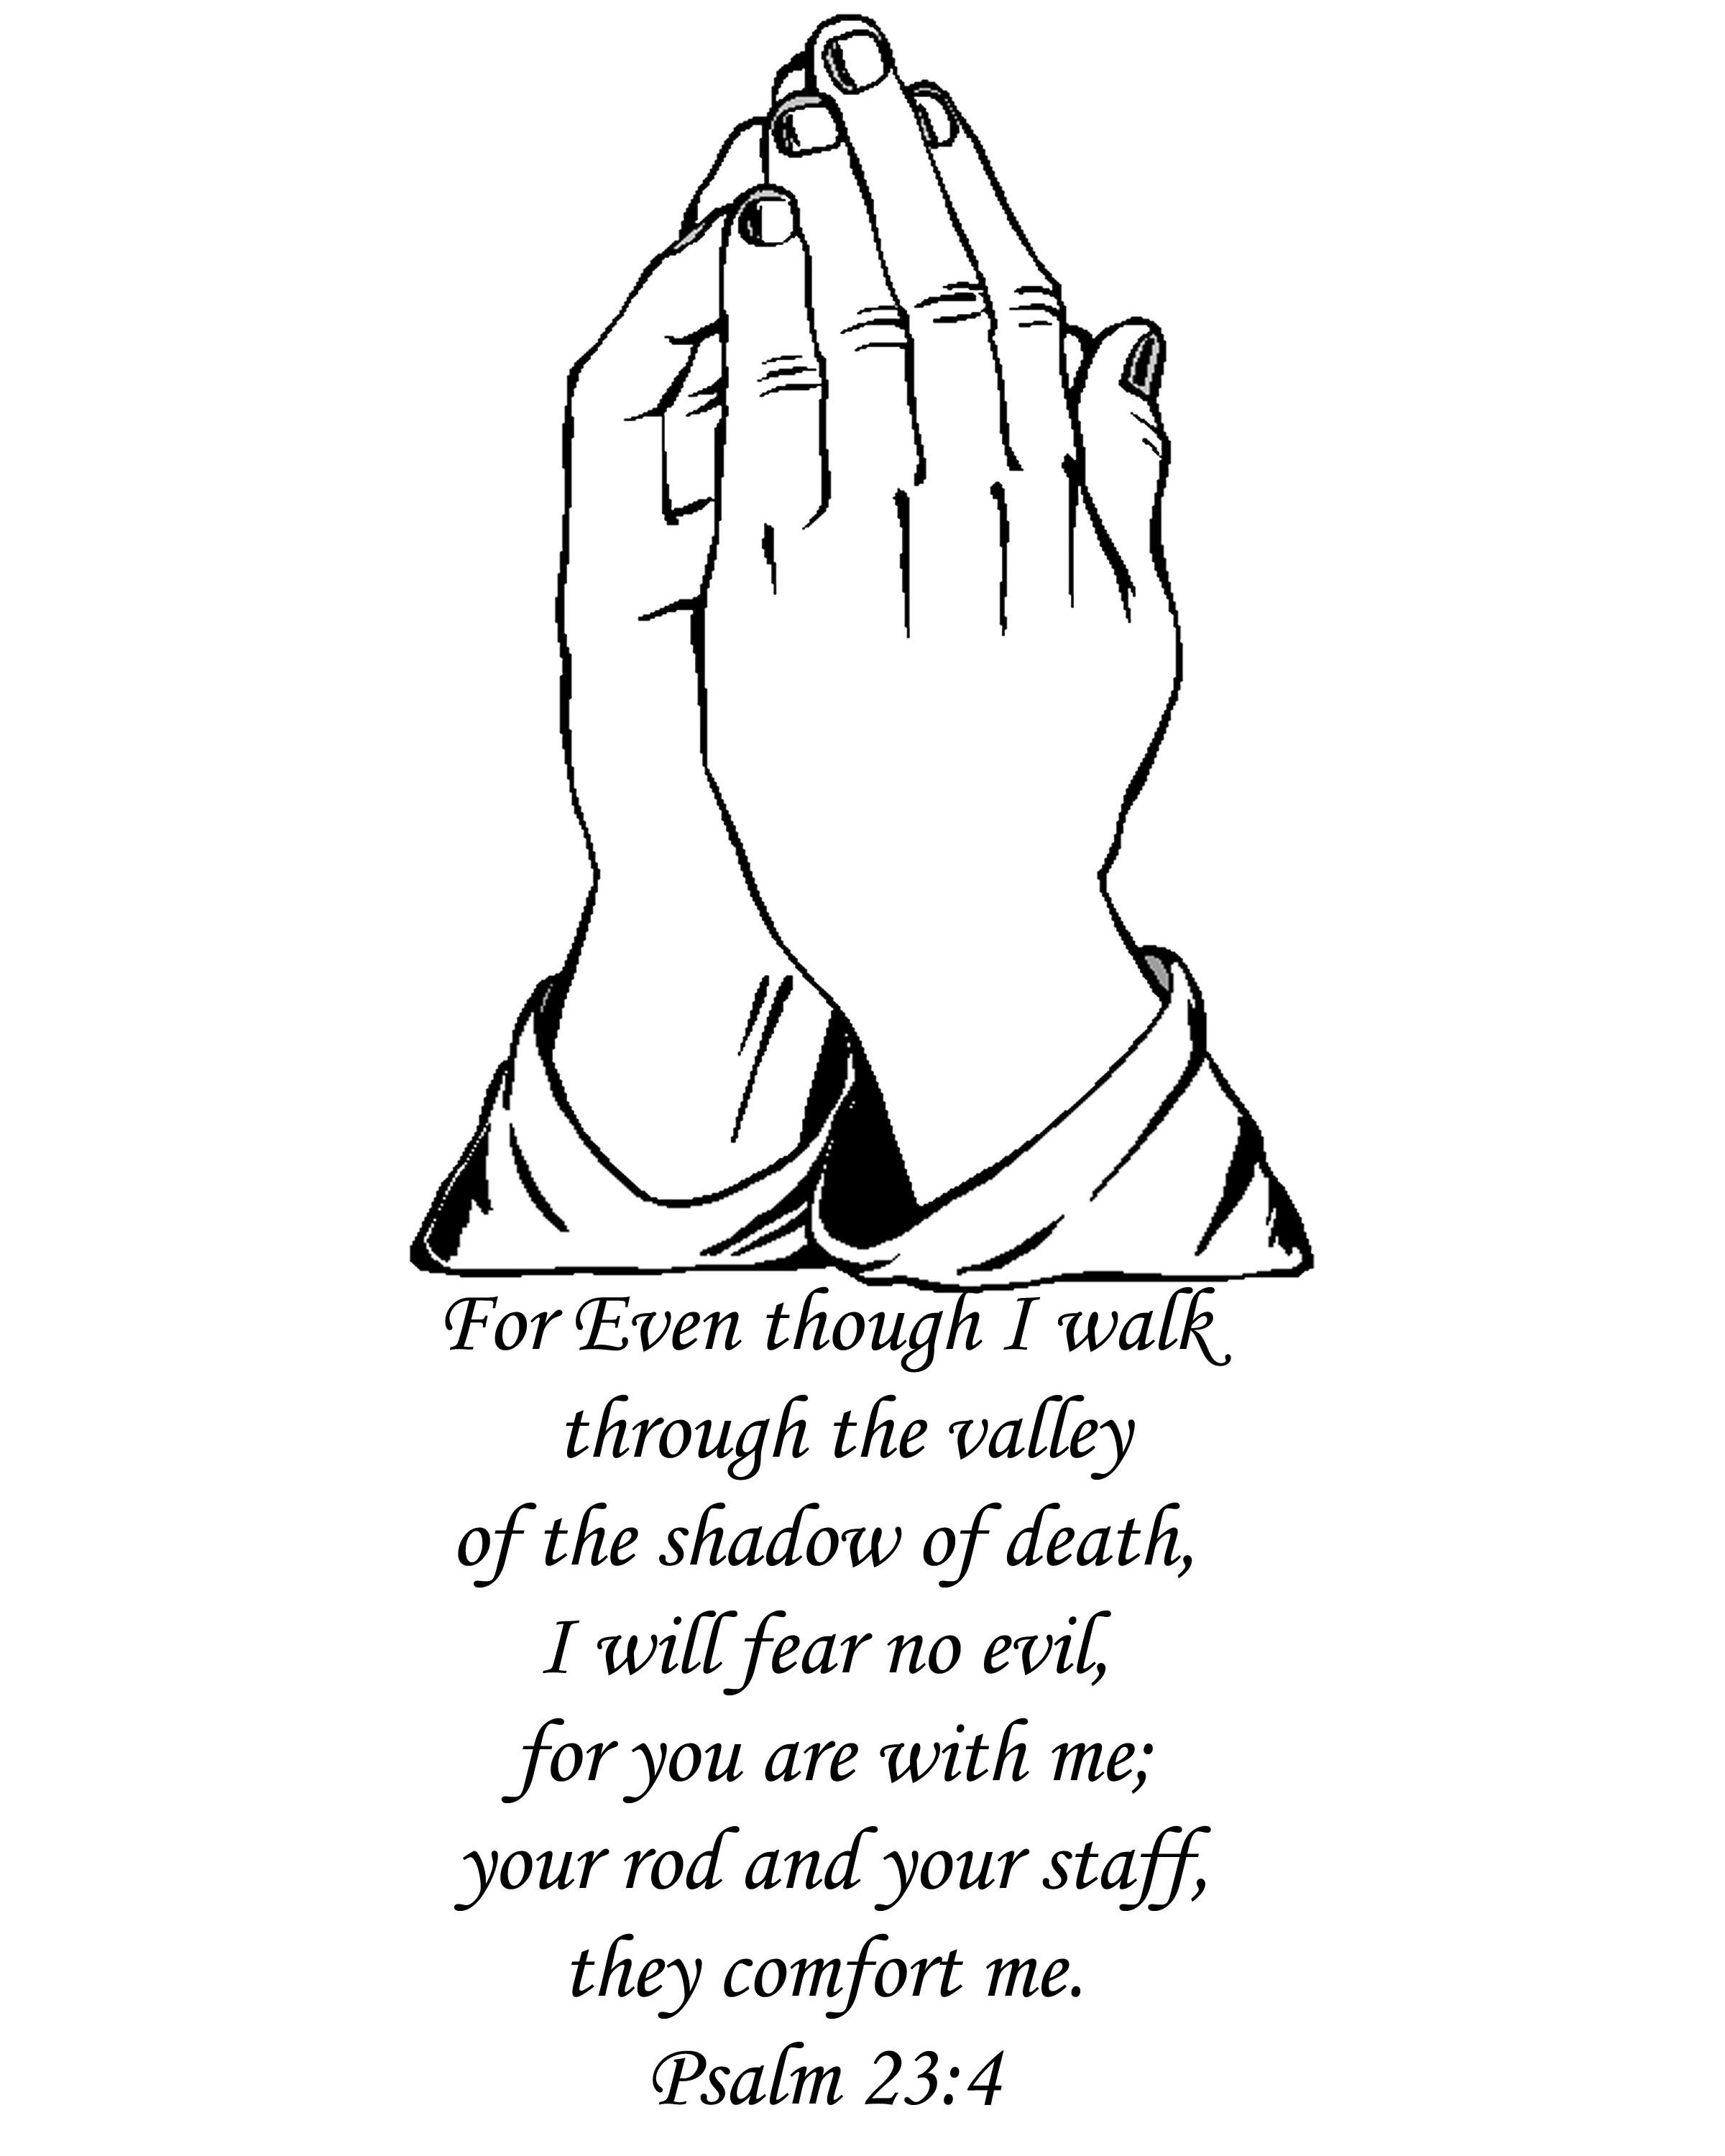 Black Religious Praying Hands With Message Tattoo Stencil By Jason